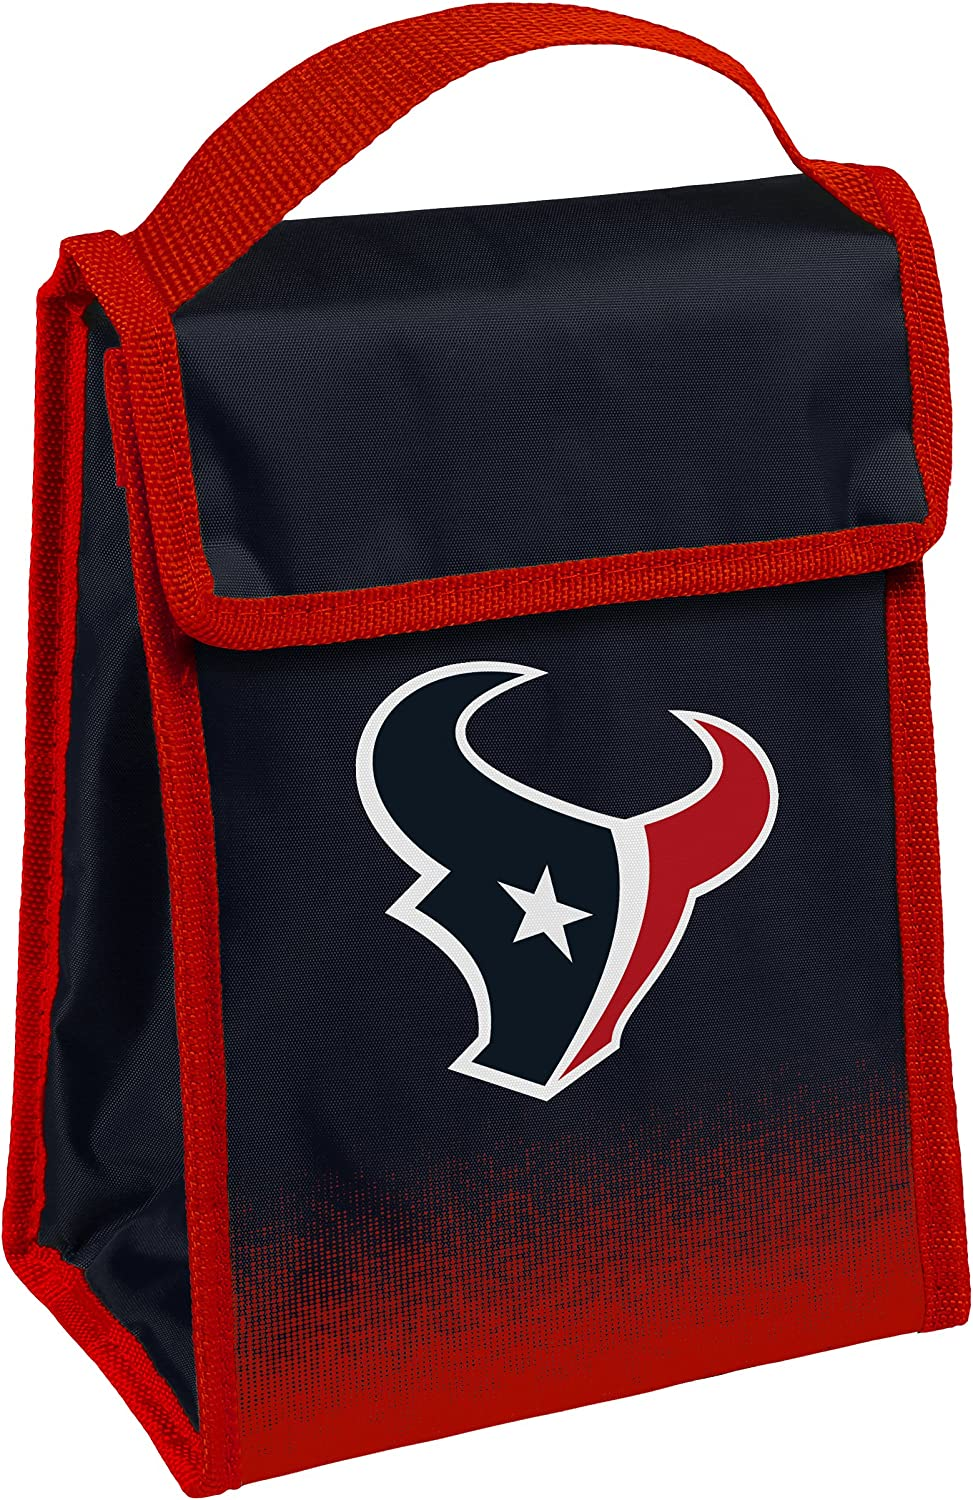 Houston Texans Gradient Now on sale Bag New Shipping Free Shipping Lunch